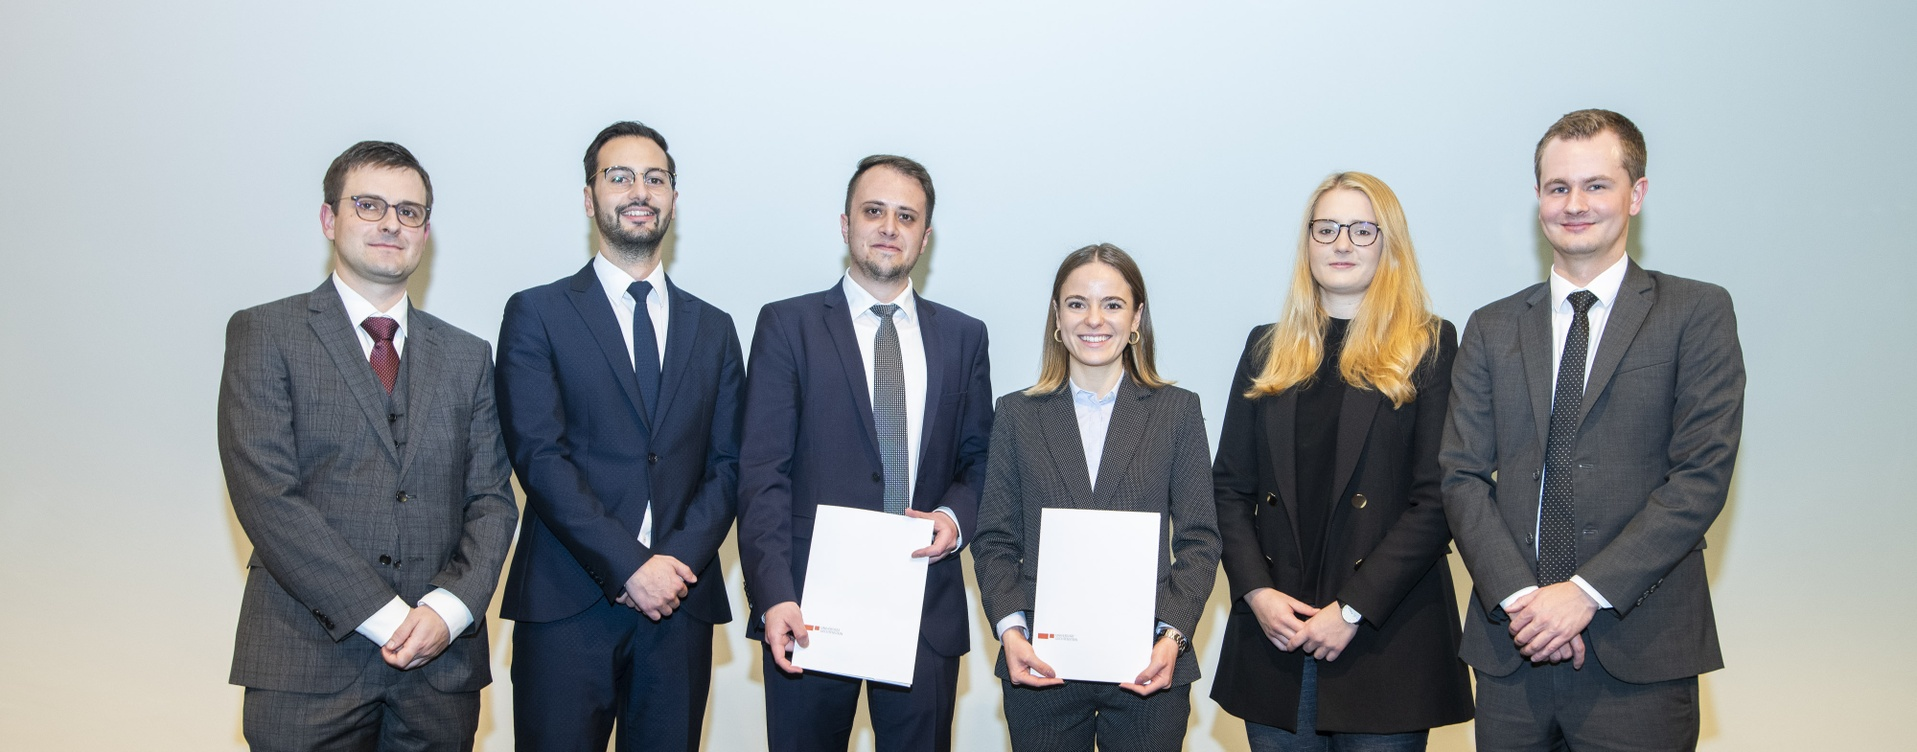 Gewinner des Finance Awards Liechtenstein 2019